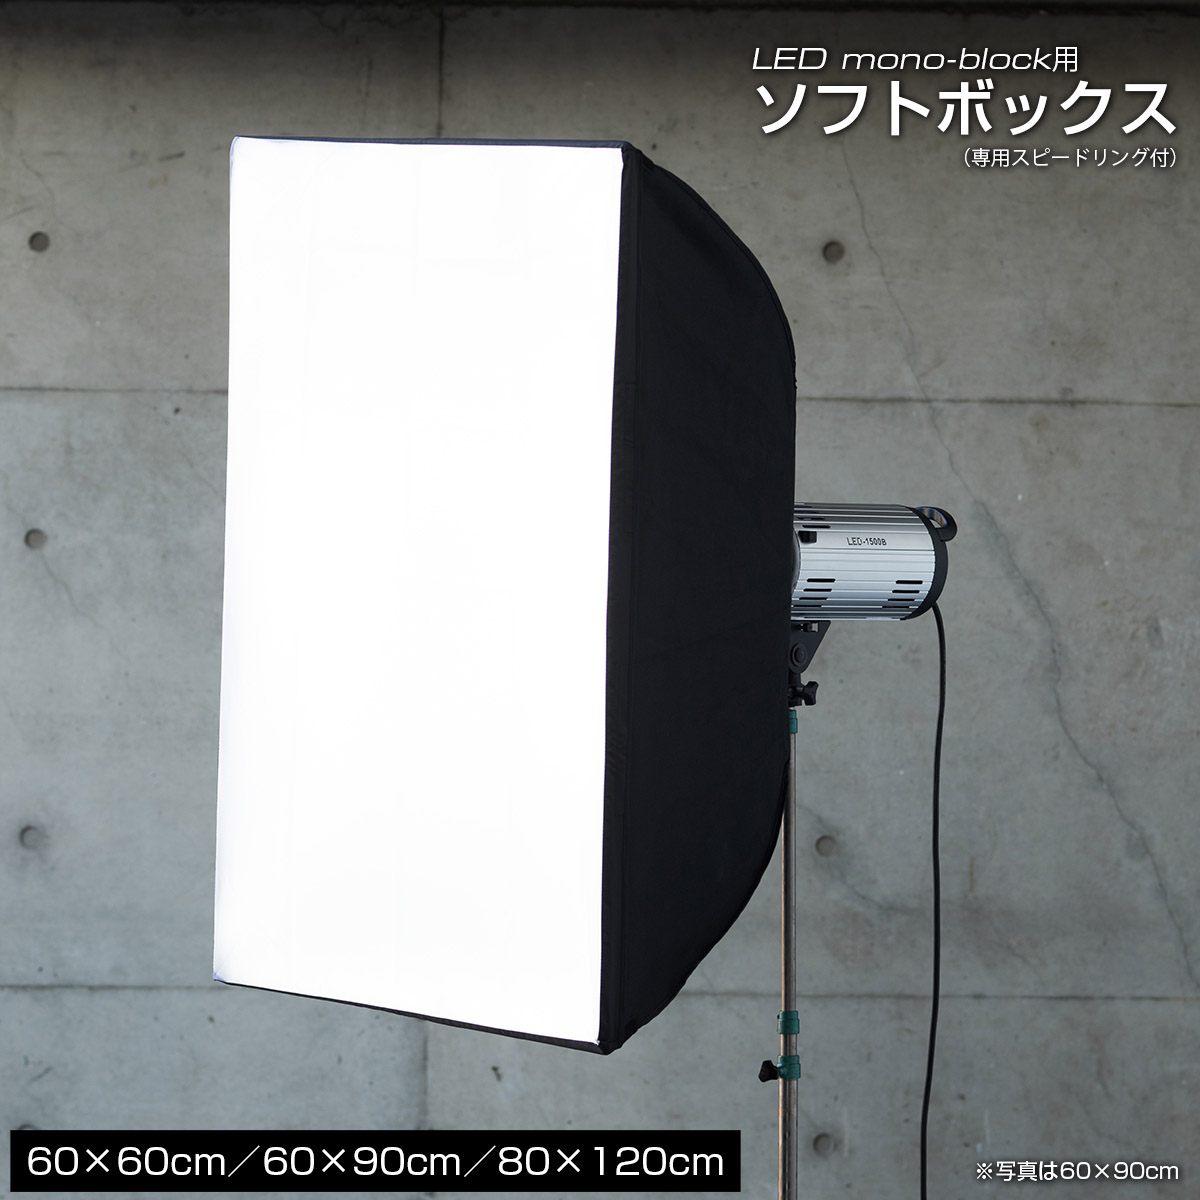 LED mono-block_SoftBox-001